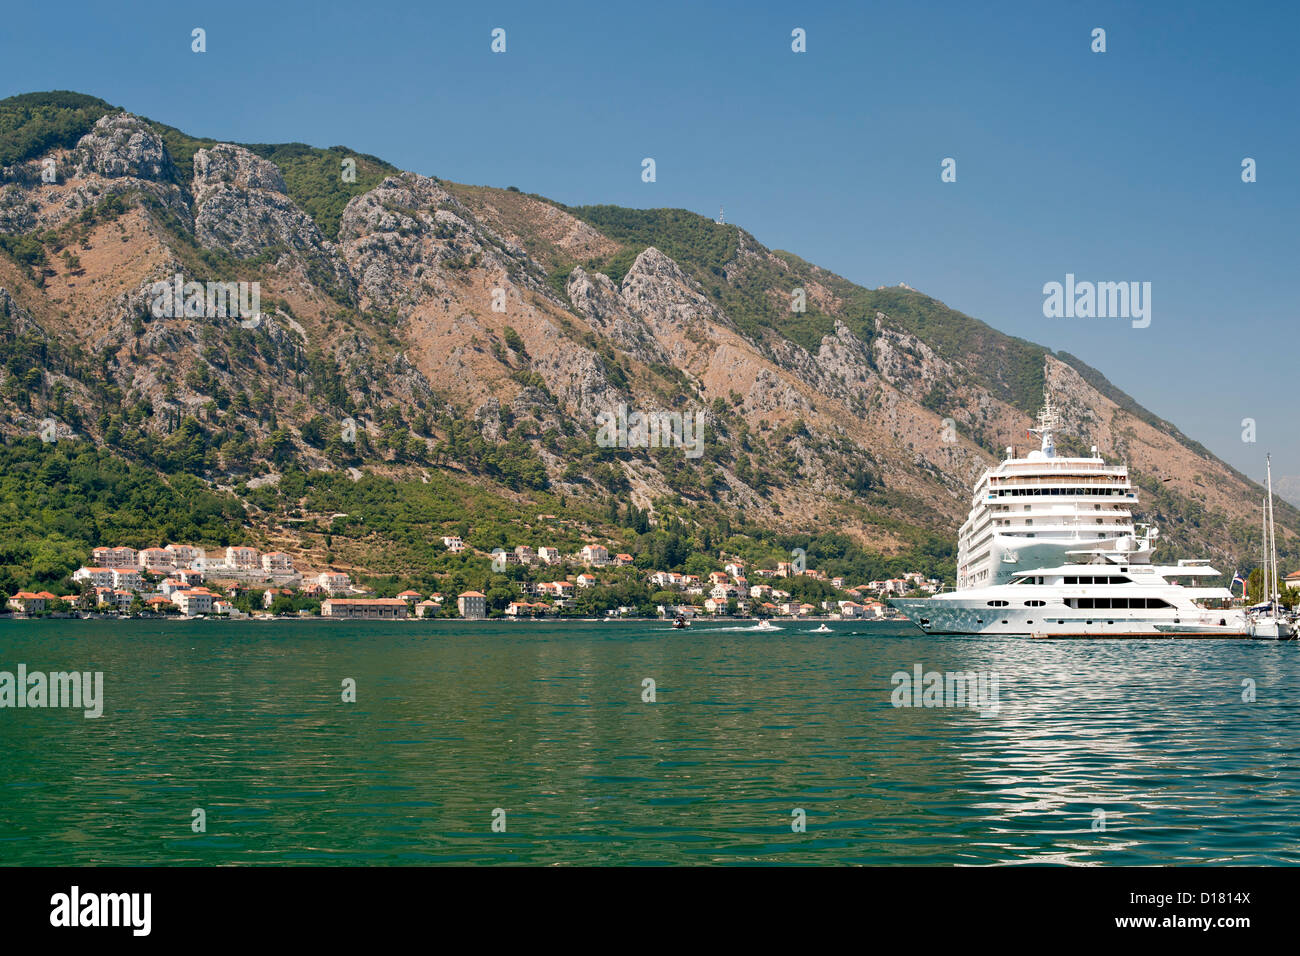 Cruise ship anchored in Kotor Bay in Montenegro. - Stock Image